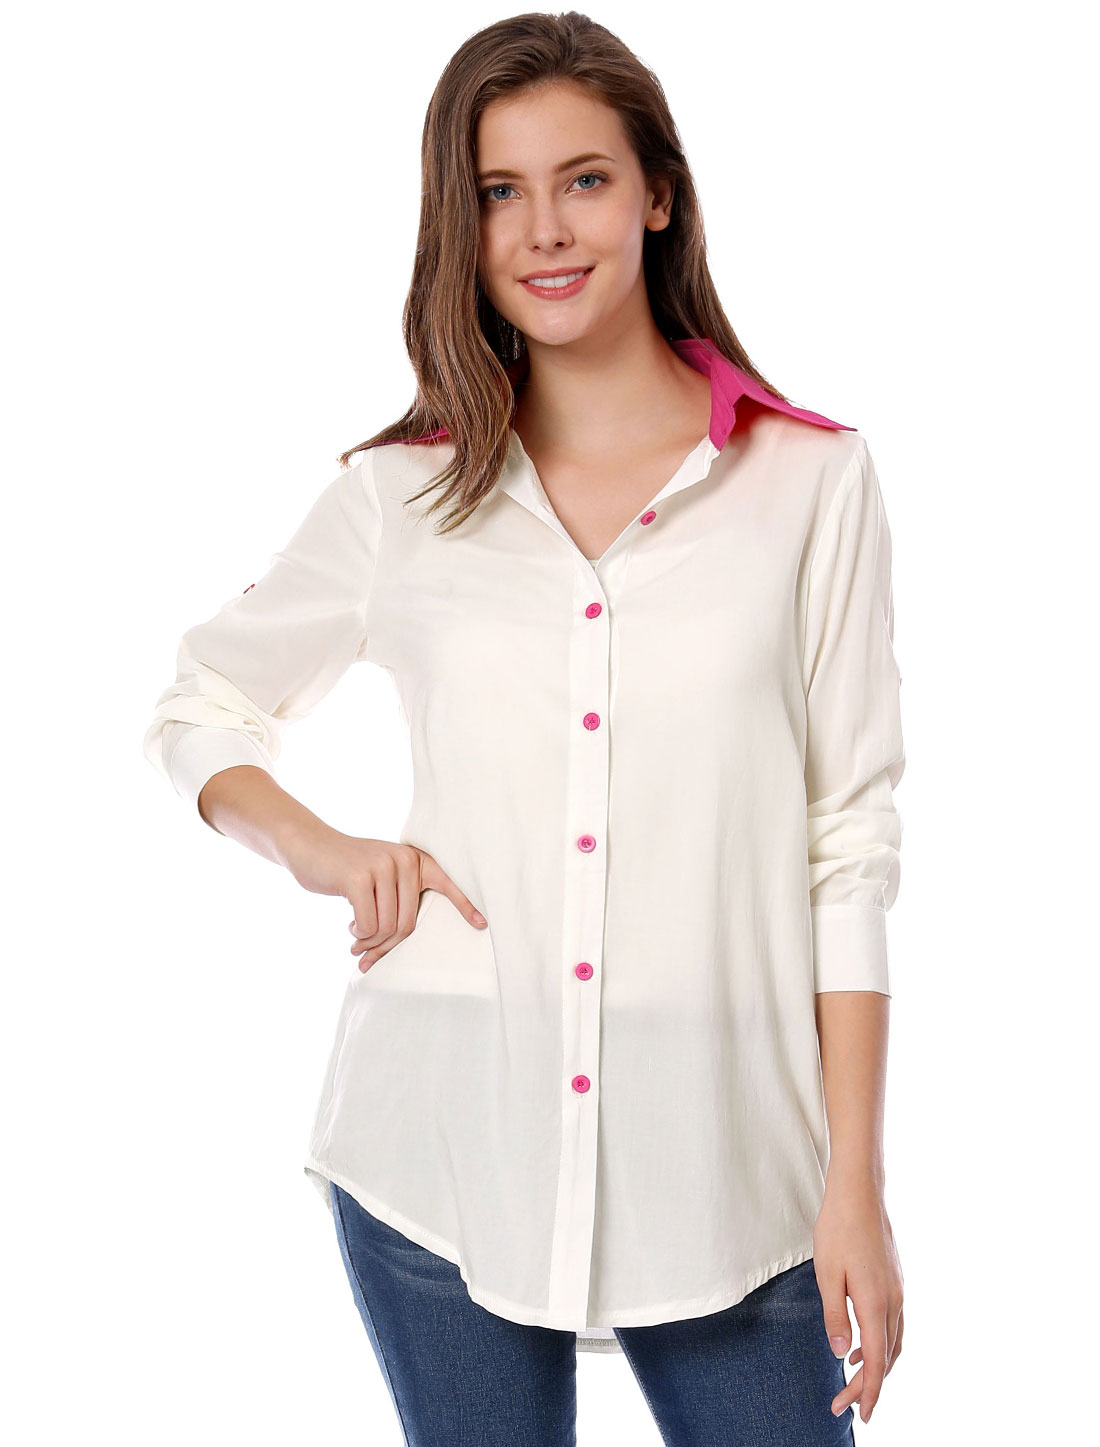 Woman Chic Fuchsia White Color Blocking Casual Button Down Shirt M